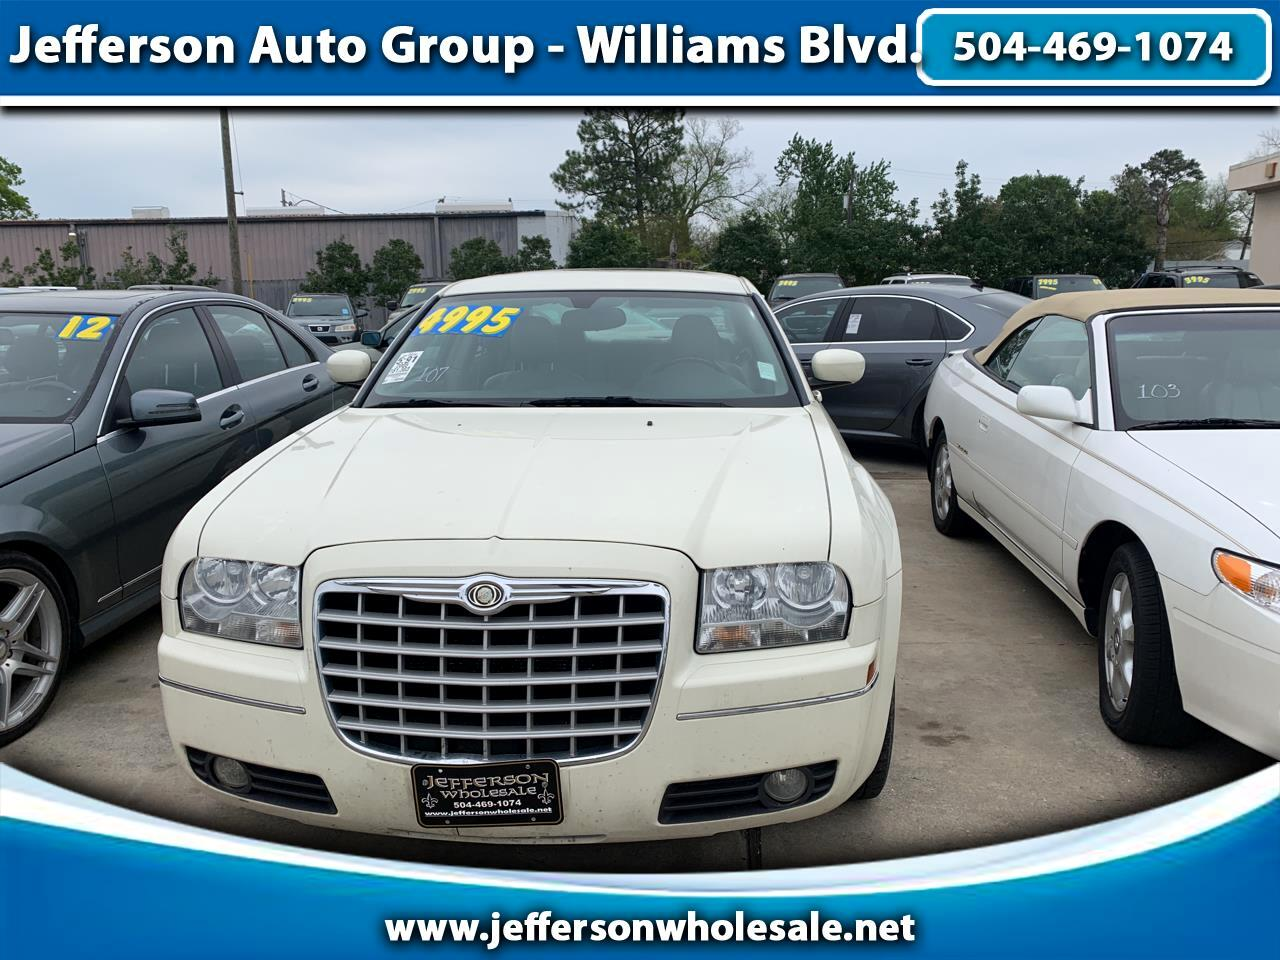 2005 Chrysler 300 4dr Sdn 300 Touring AWD *Ltd Avail*